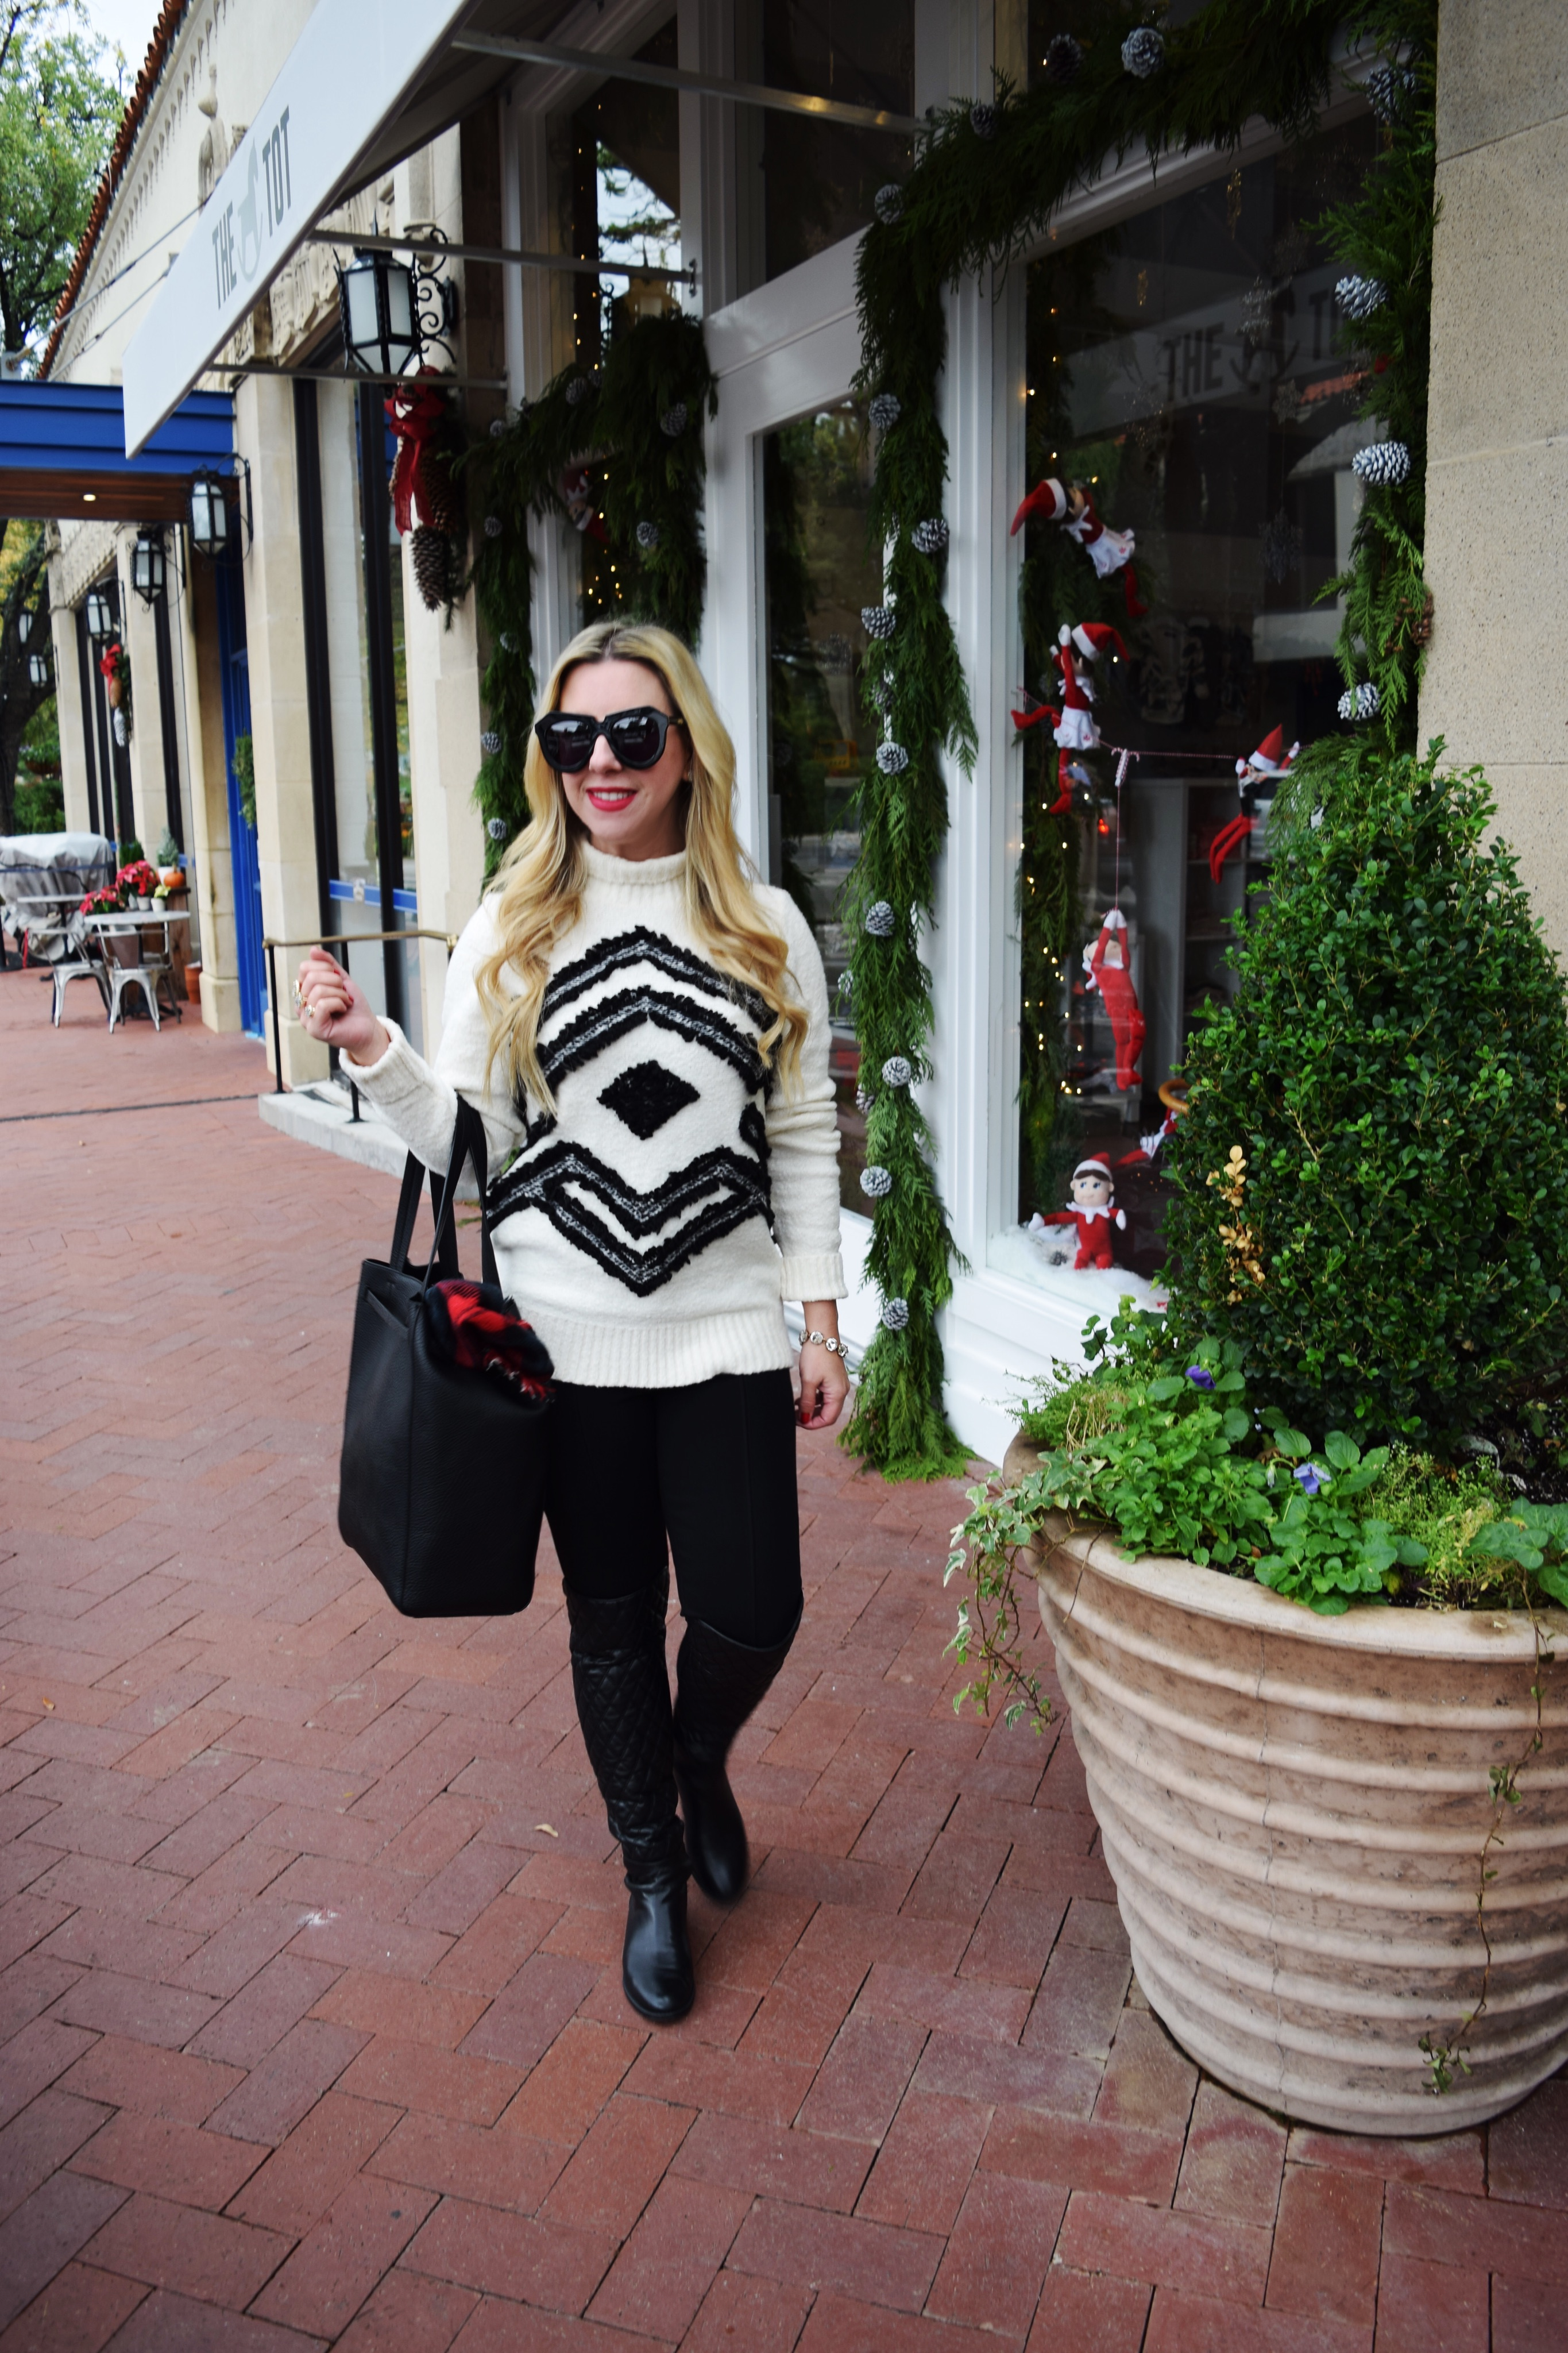 Snowflake Sweater | The Darling Petite Diva